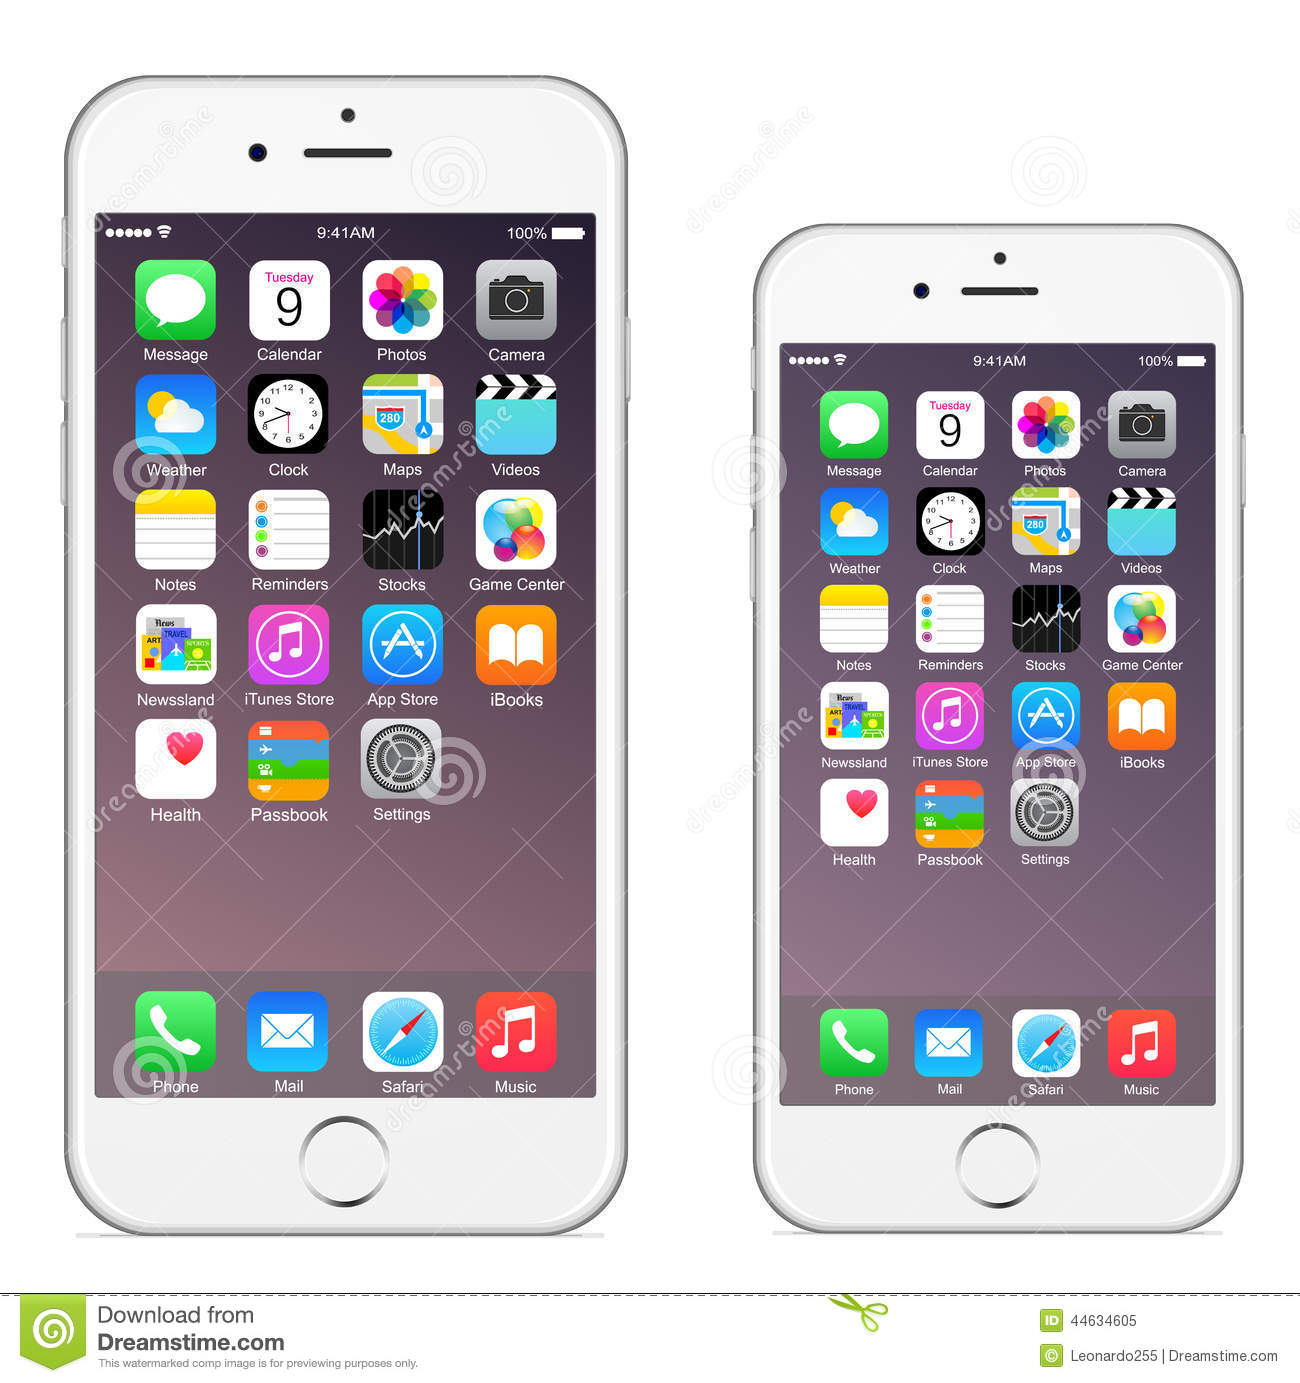 Clipart iphone 6 graphic royalty free Clipart iphone 6 - ClipartFox graphic royalty free